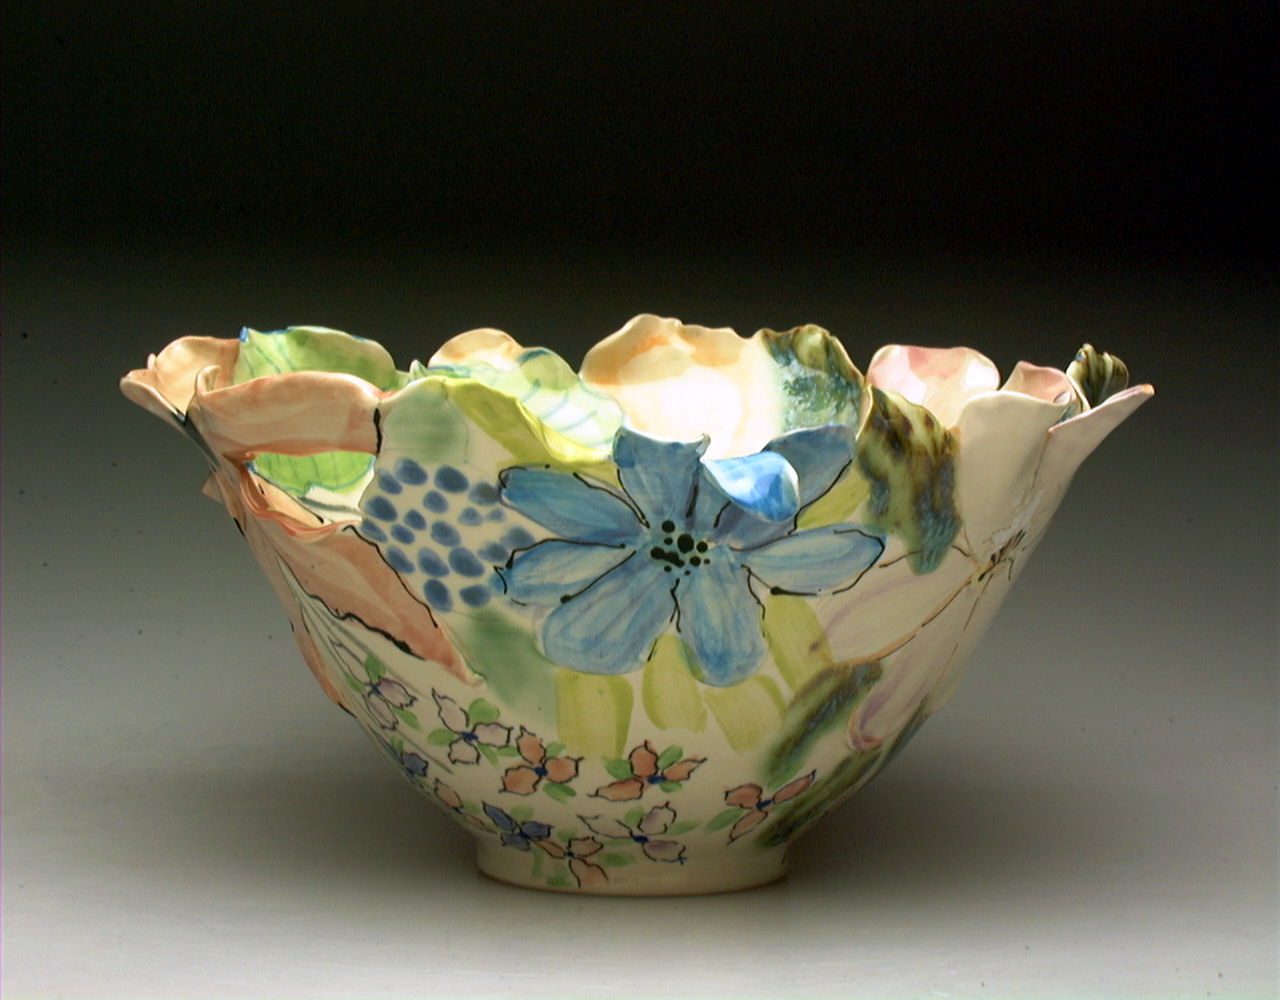 Susan Card - Card's ceramic pieces are formed and sculpted, then painted in a watercolour style with glazes and underglazes. Her work acknowledges the tradition of floral symbolism in art that signifies feminine beauty, fertility, and the natural and philosophical worlds, and elevates the everyday to the contemplative.